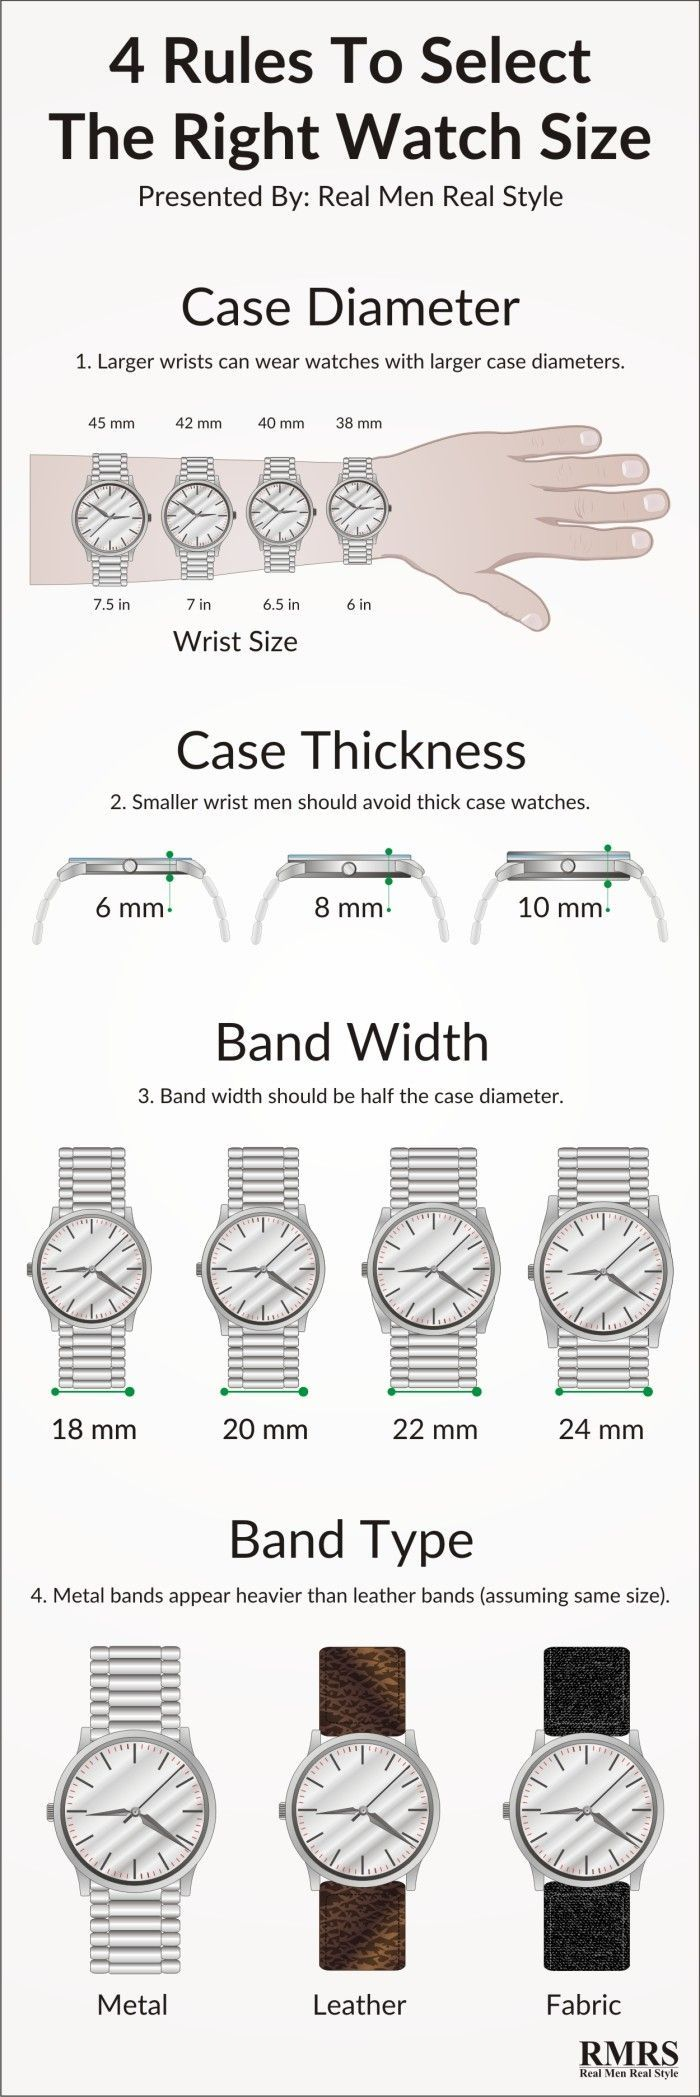 How To Buy The Right Sized Watch